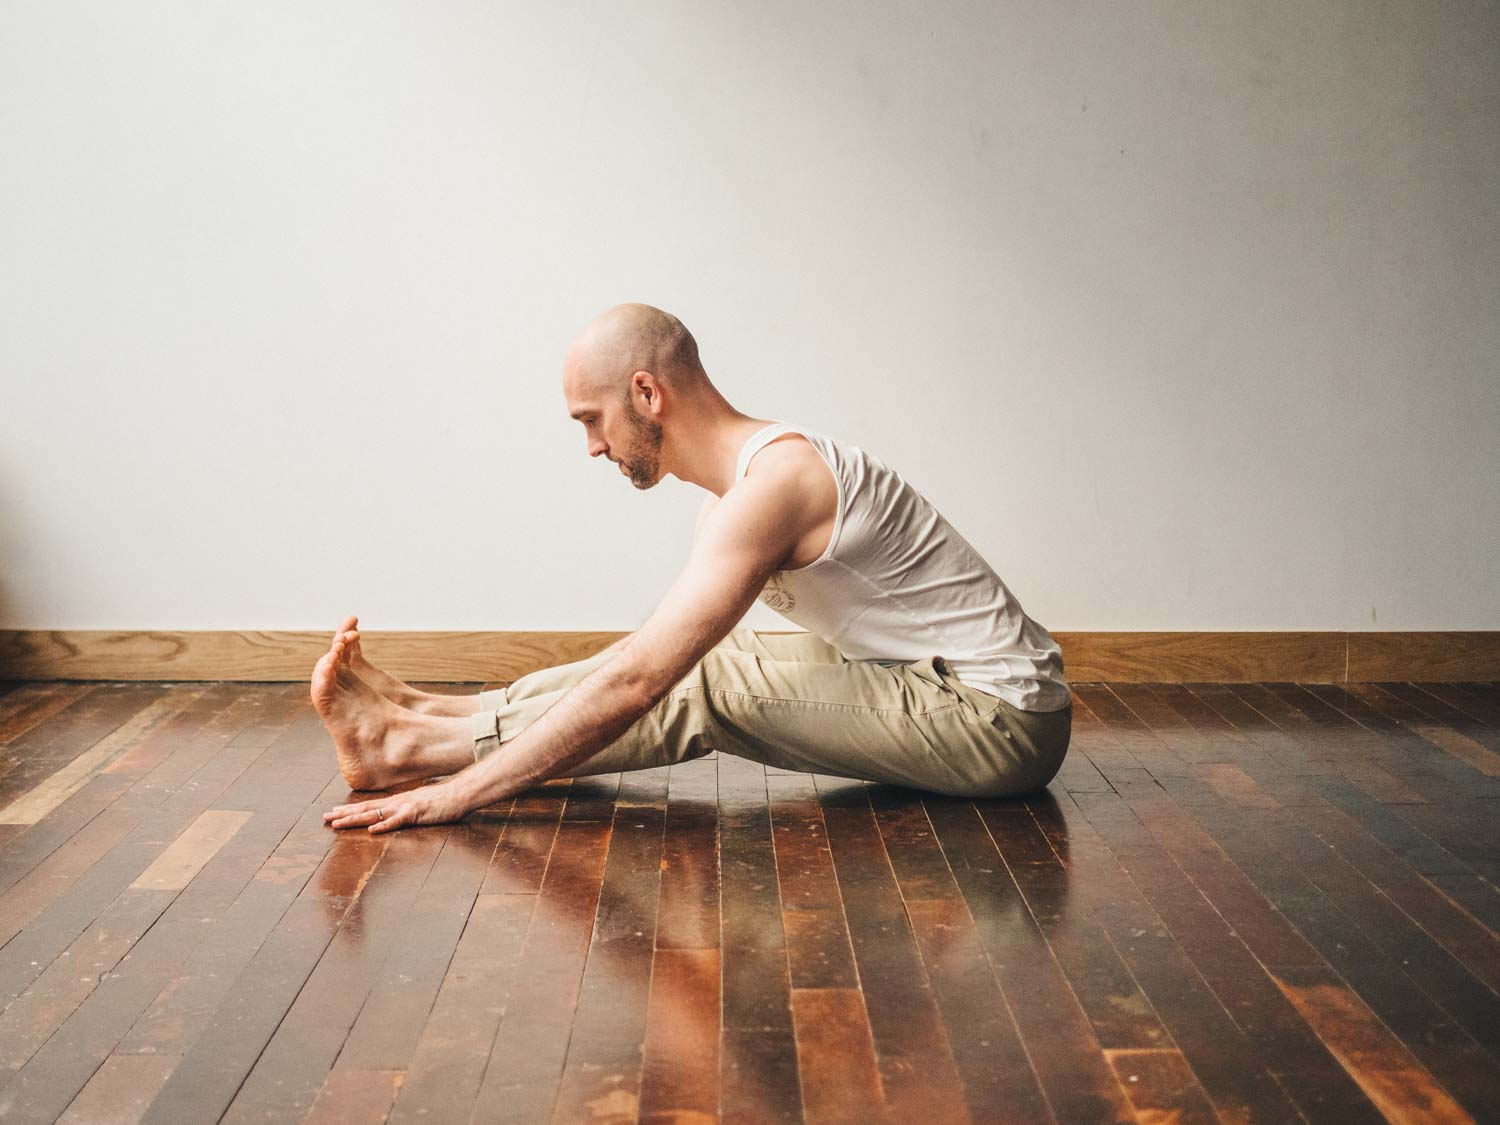 Man doing Paschimottanasana or seated forward fold yoga pose